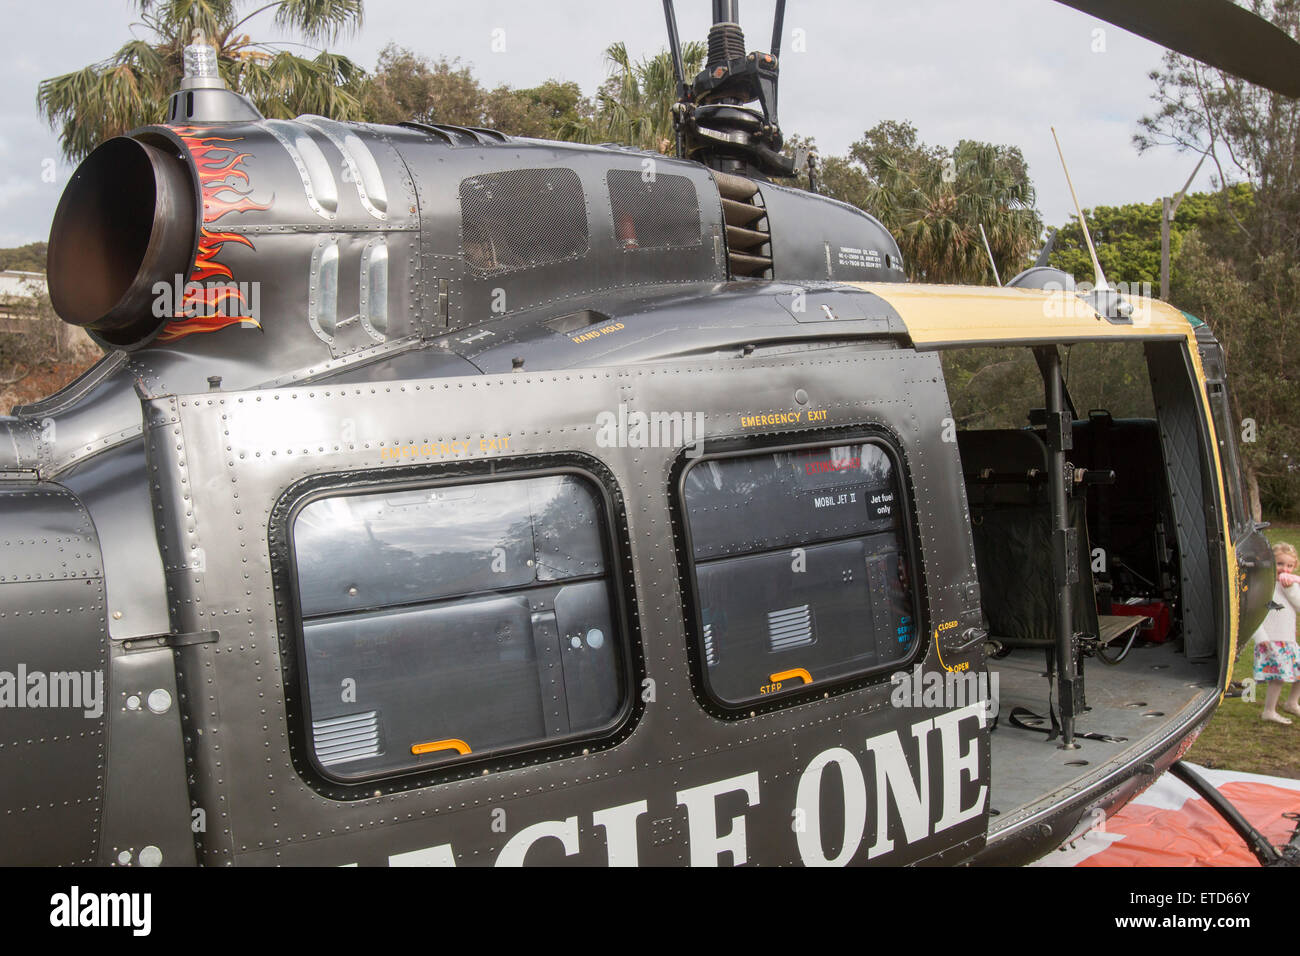 Sydney, Australia. 13th June, 2015. 10th Avalon Beach Military Tattoo featured the Bell UH-1 Iroquois which is a - Stock Image